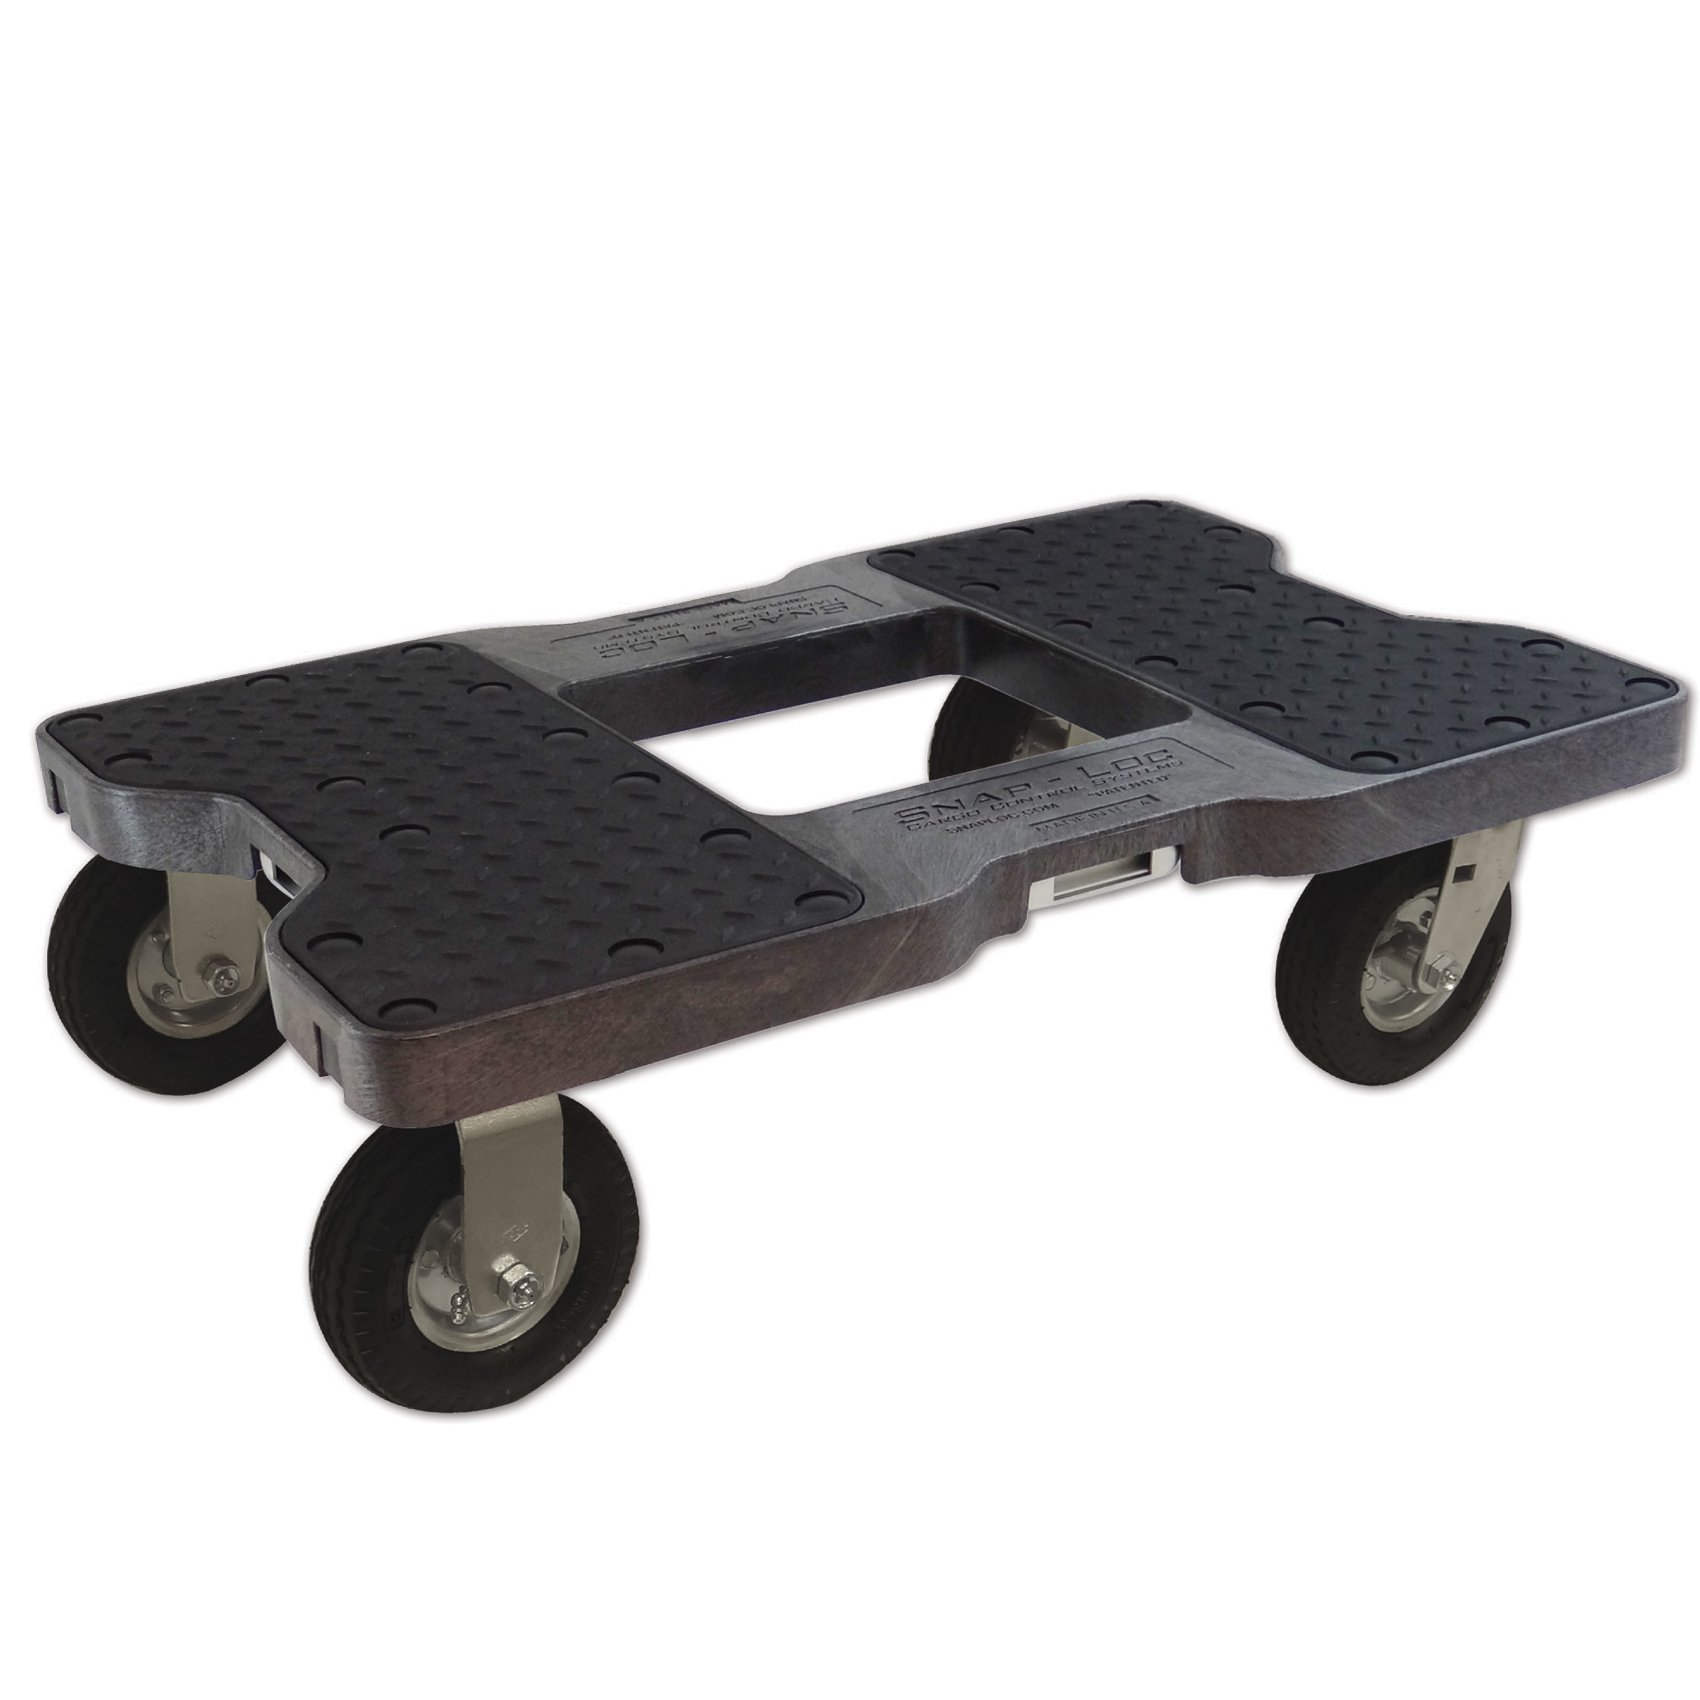 SNAP-LOC AIR-RIDE DOLLY BLACK (USA!) with 1500 lb Capacity, Steel Frame, 6 inch Casters and optional E-Strap Attachment